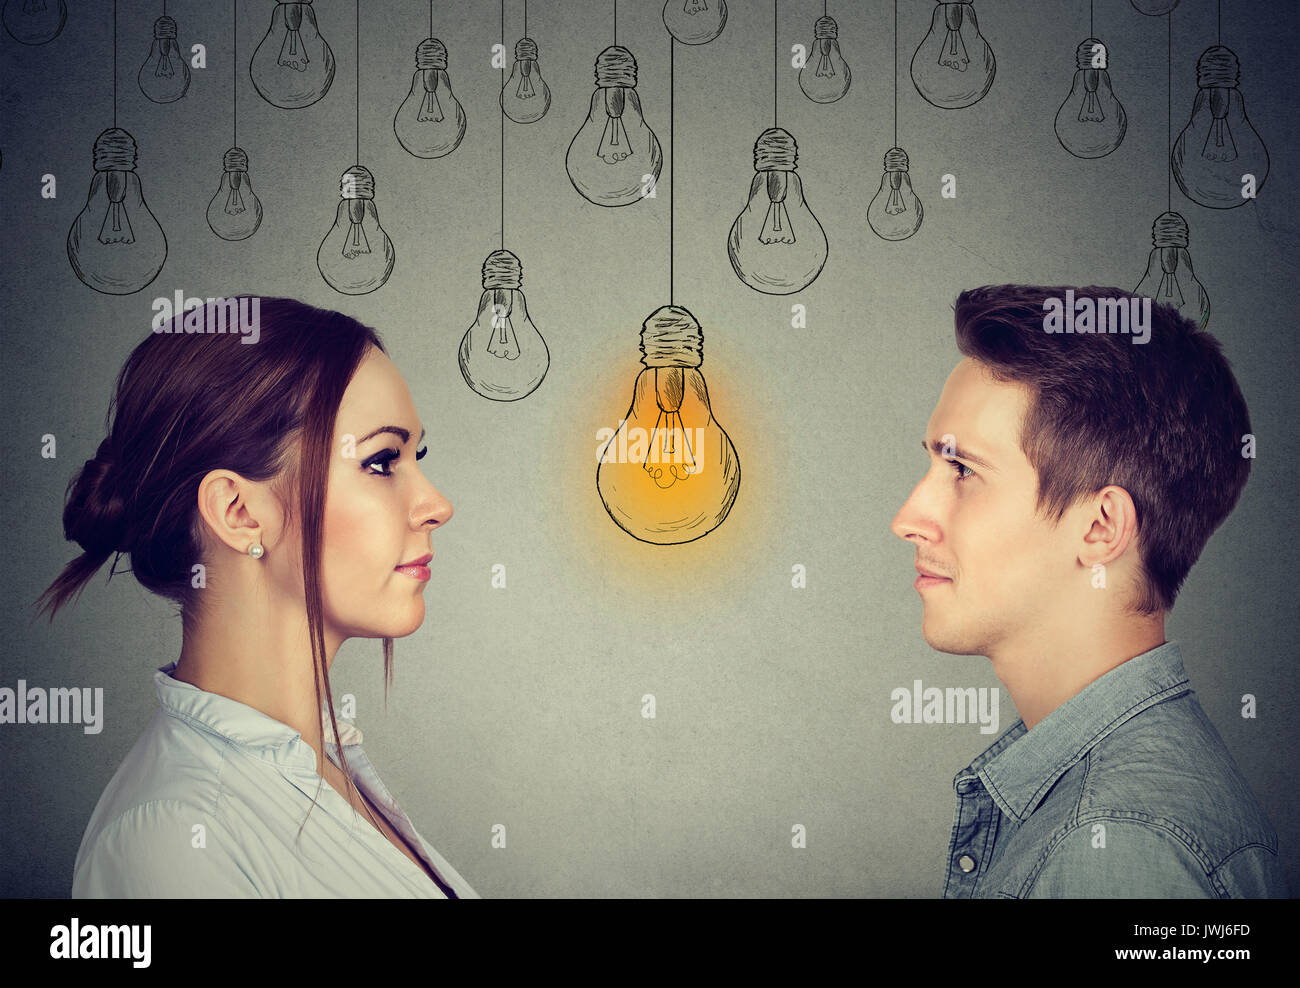 Cognitive skills ability concept, male vs female. Man and woman looking at bright light bulb isolated on gray wall background - Stock Image